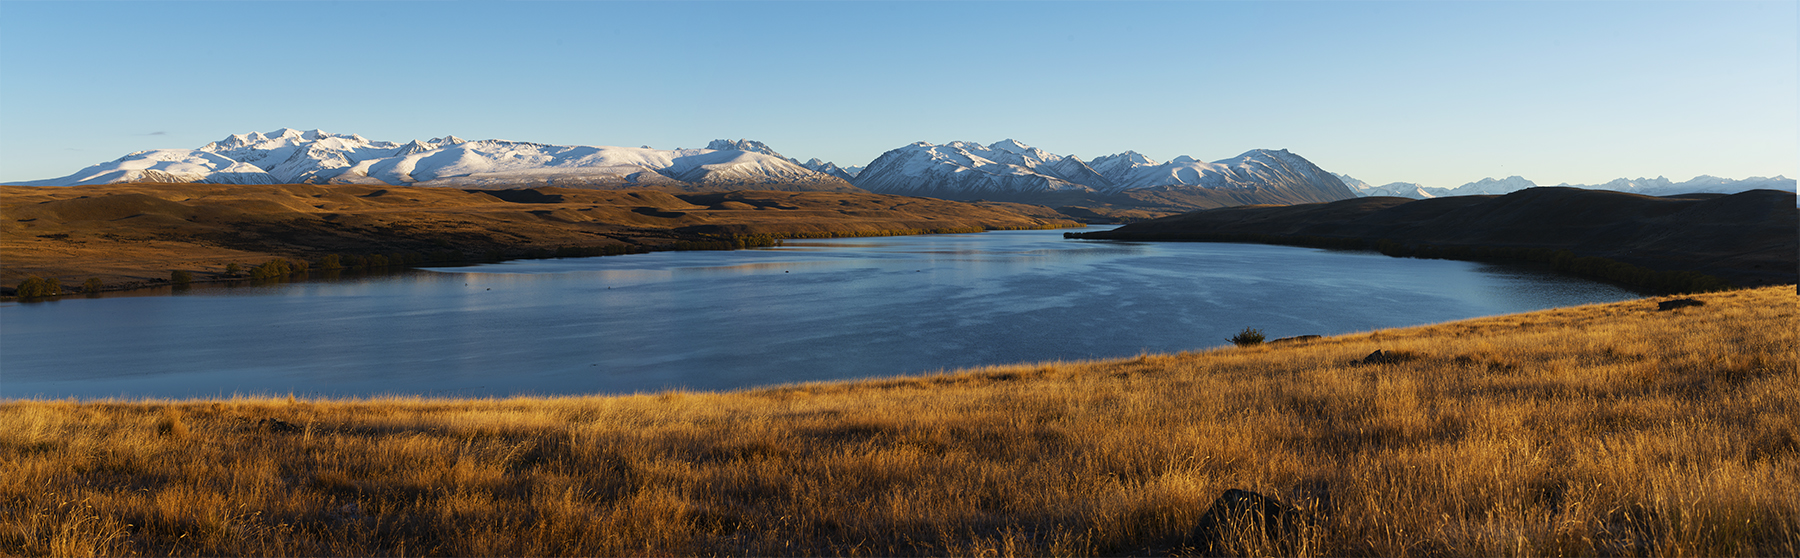 Lake Alexandrina New Zealand. A Limited Edition Fine Art Landscape Photograph by Richard Hume